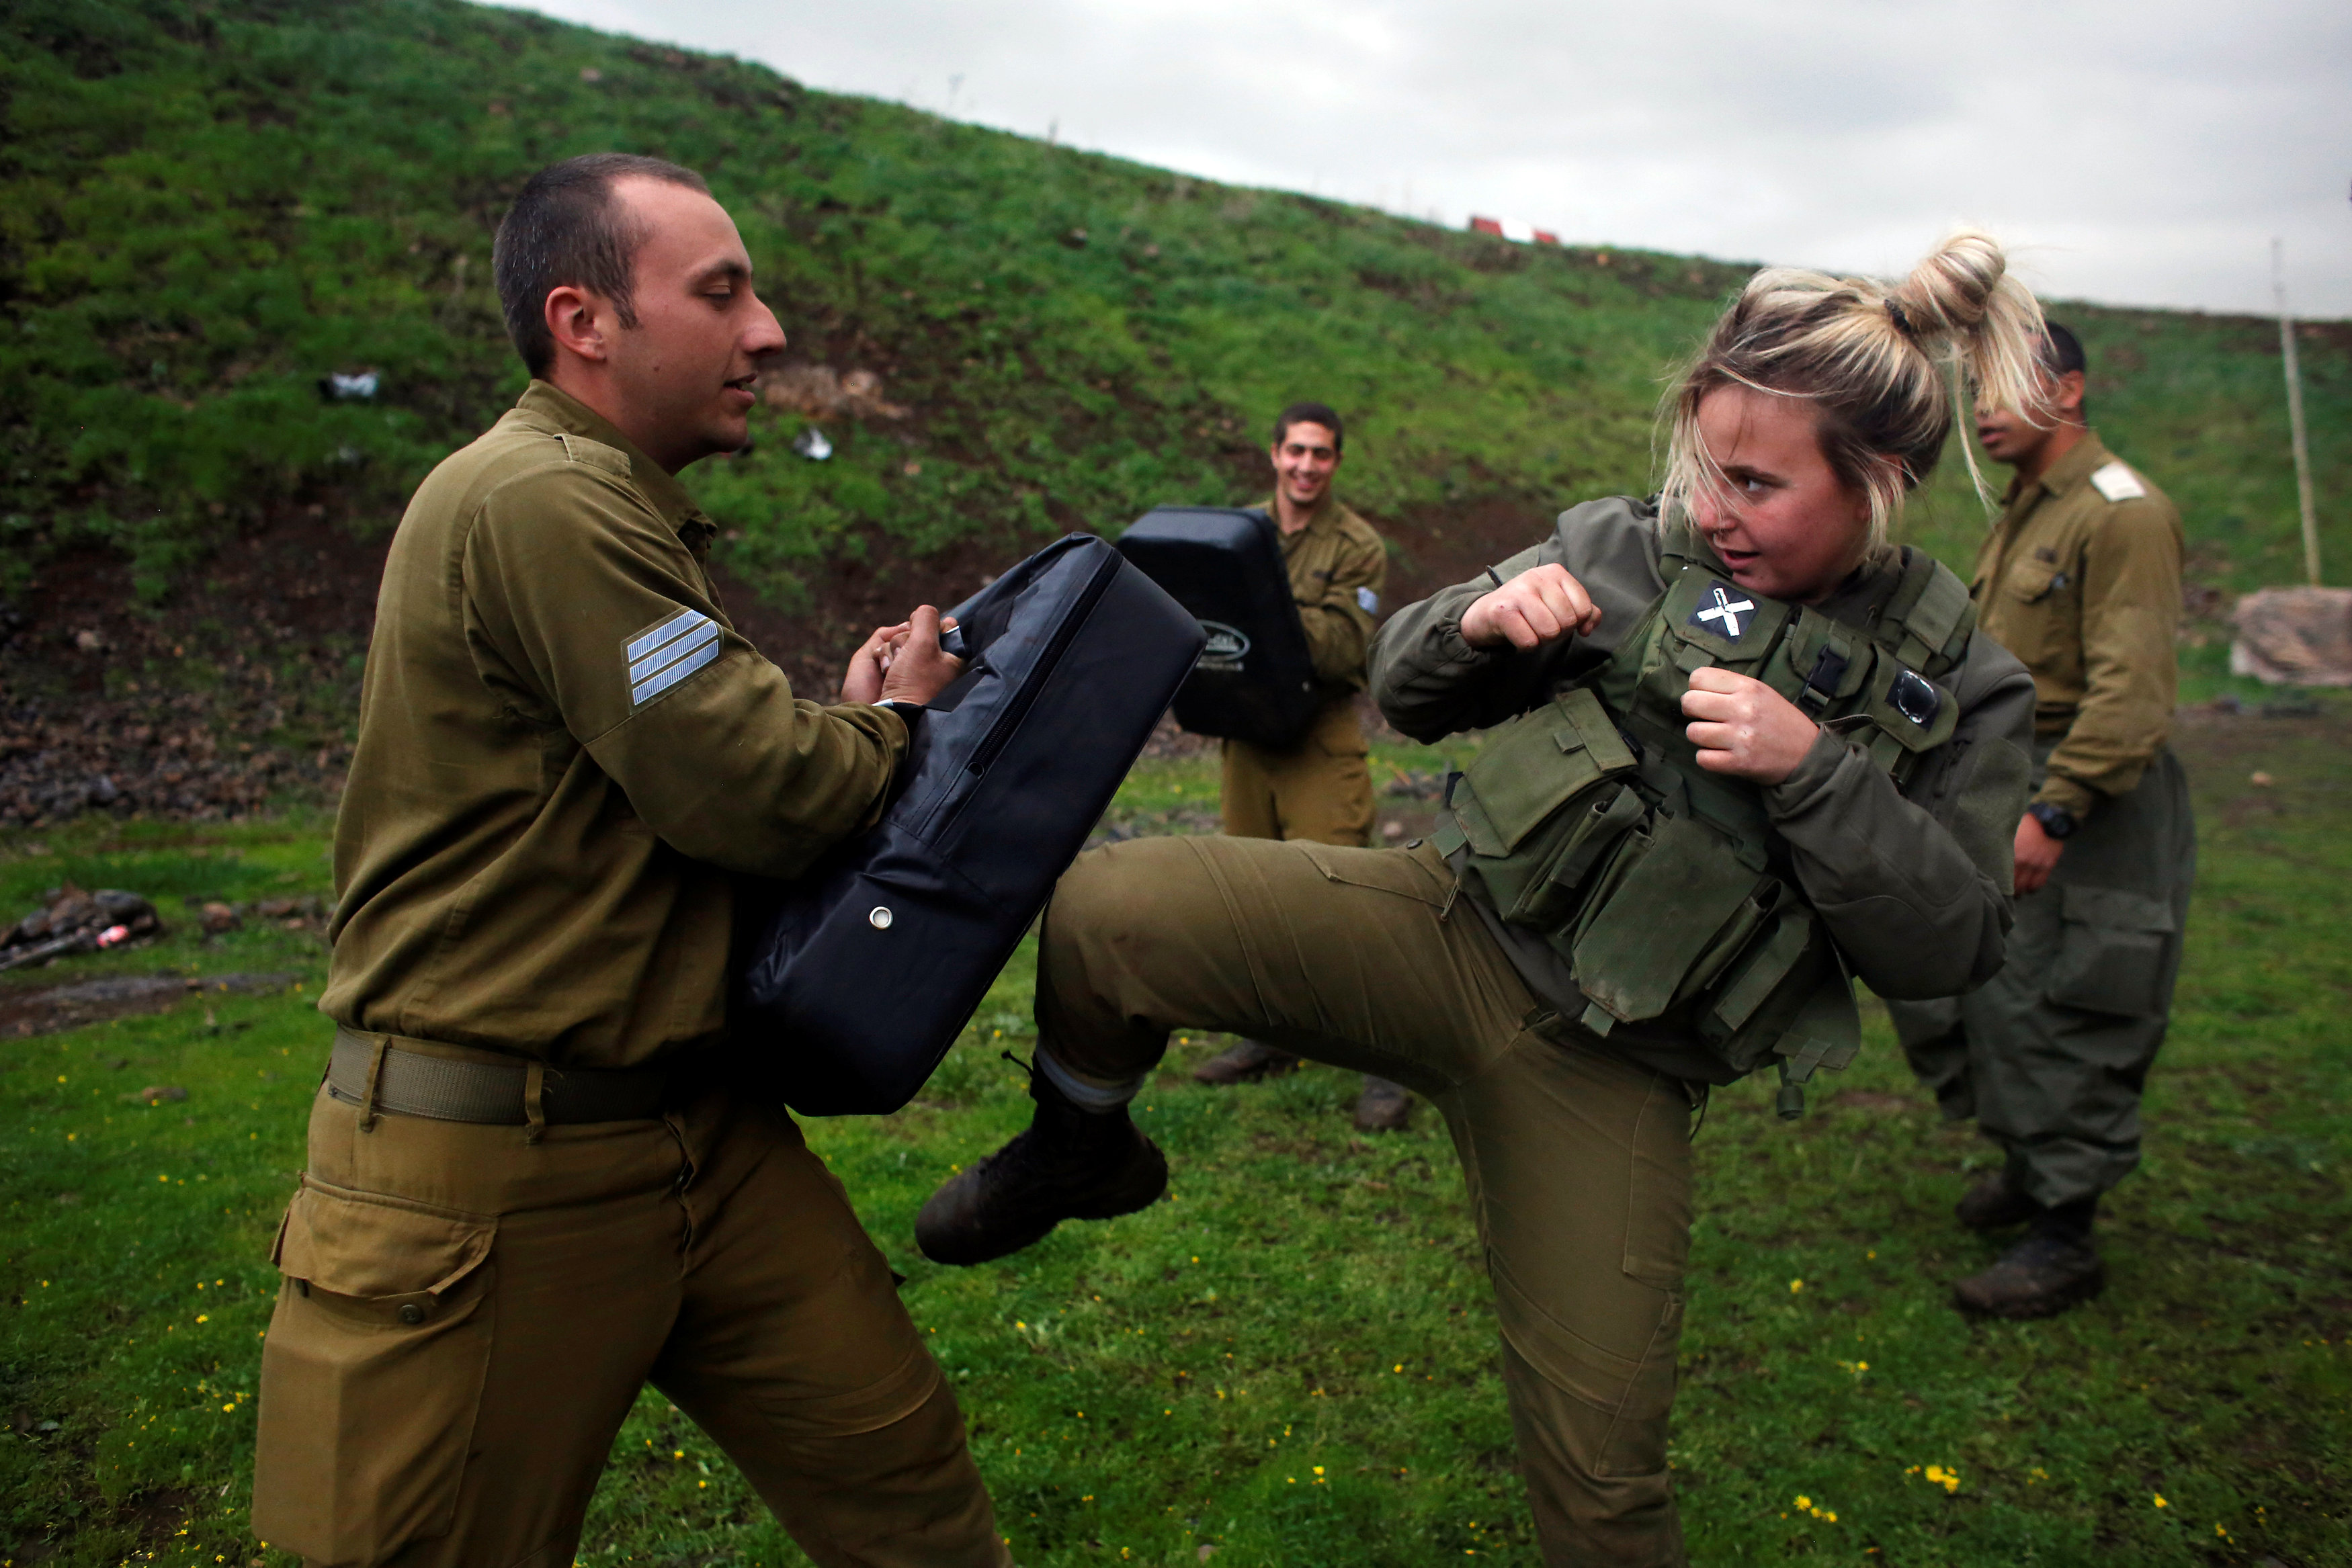 A female Israeli soldier from the Haraam artillery battalion takes part in a training session in Krav Maga, an Israeli self-defence technique, at a military base in the Israeli-occupied Golan Heights March 1, 2017. REUTERS/Nir Elias